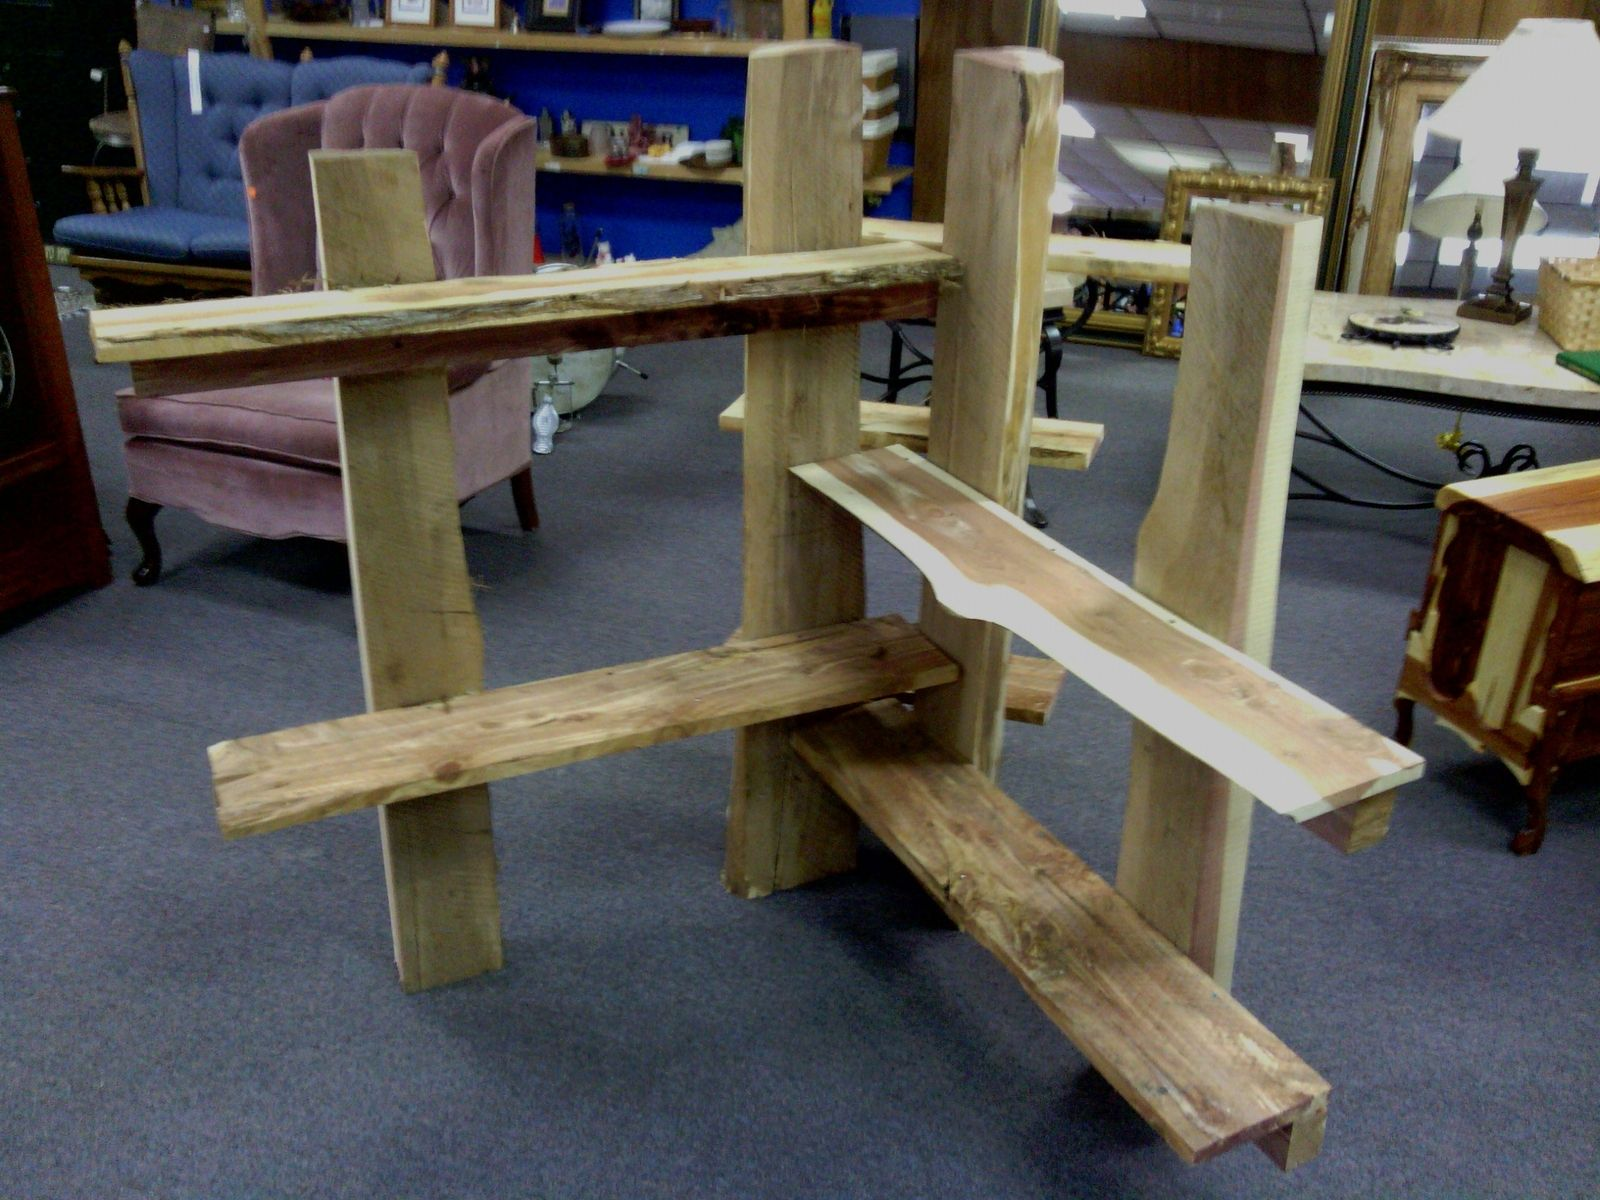 Superb img of  Wooden Display Shelves by Good Shepard Wood Working CustomMade.com with #736644 color and 1600x1200 pixels